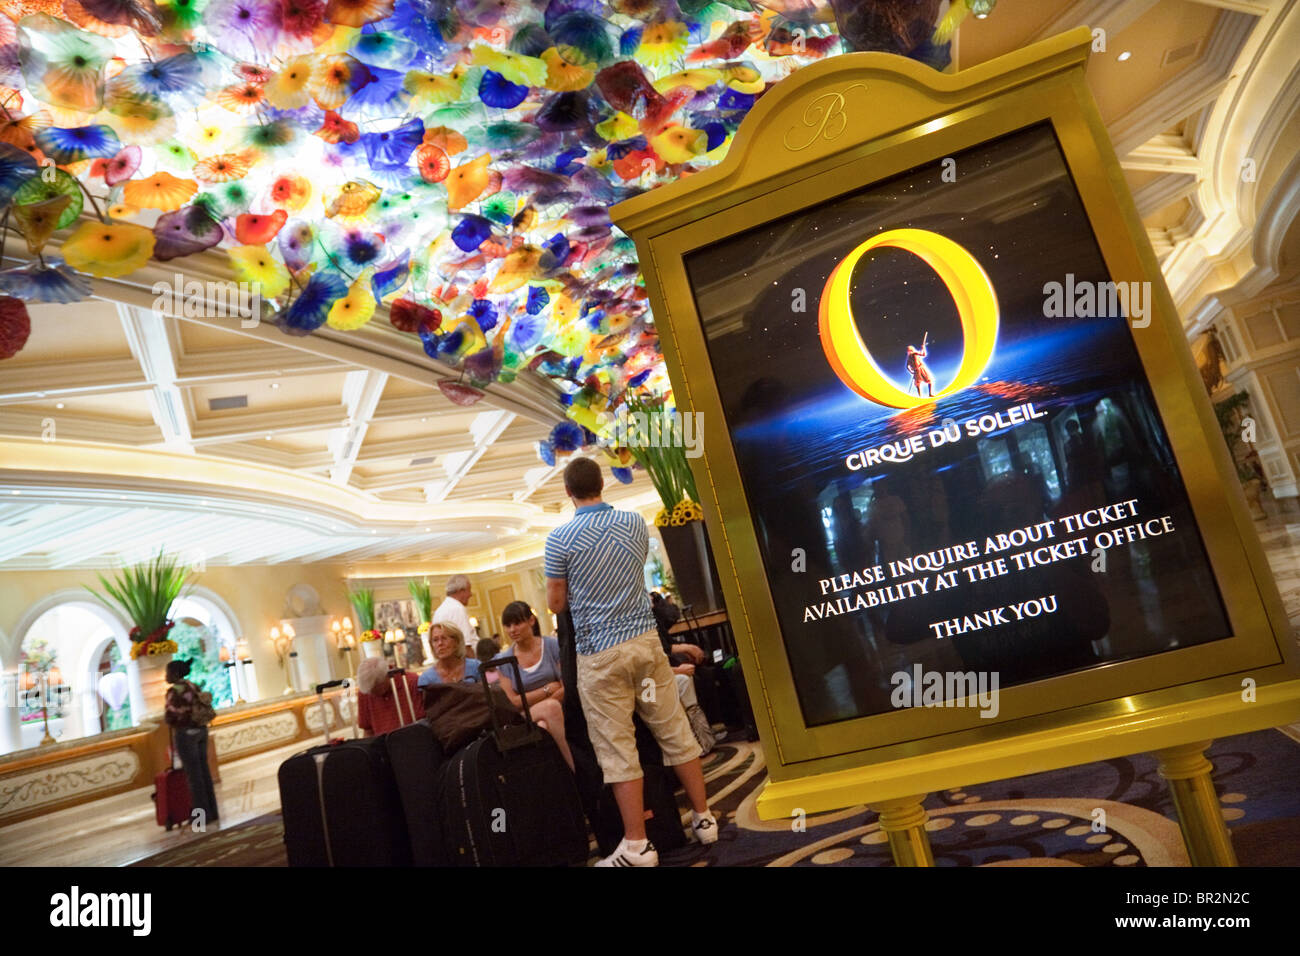 Bellagio O Show >> A Sign For The Cirque Du Soleil Show O The Lobby At The Bellagio